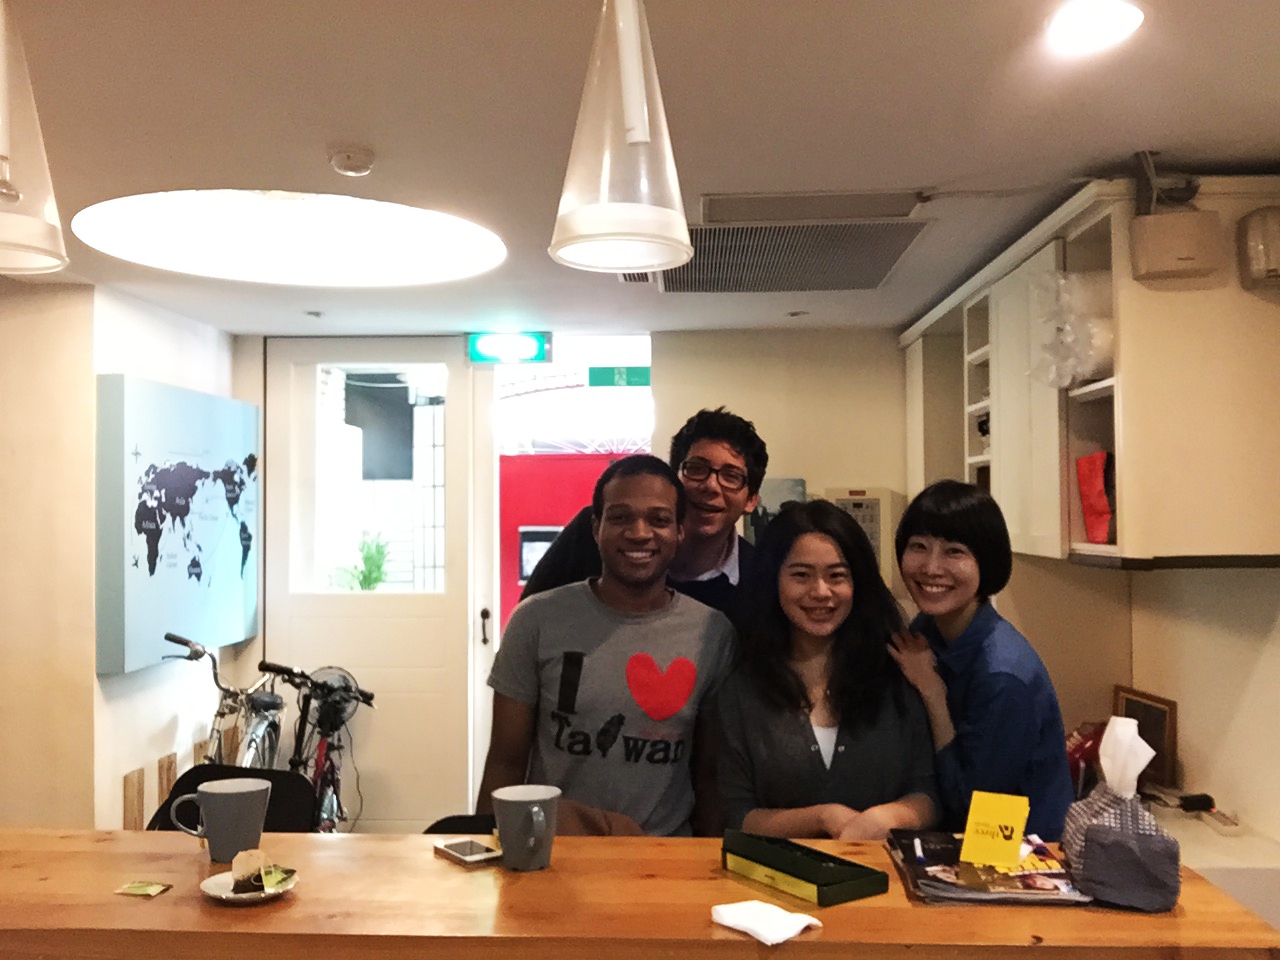 three-little-birds-hostel-guesthouse-taipei-taiwan-warm-welcome-tourist-backpackers-tourism-January-memo-moments-guests